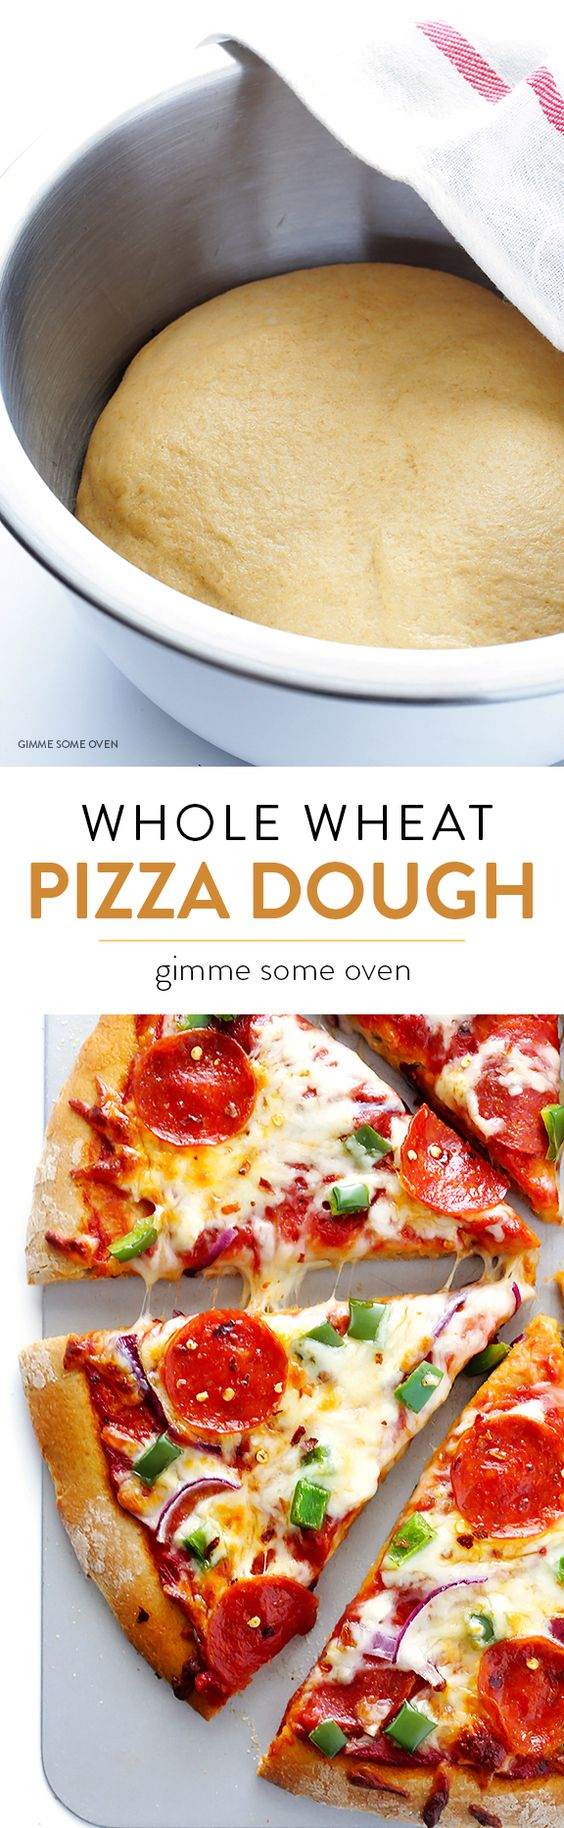 Whole wheat pizza and Pizza on Pinterest